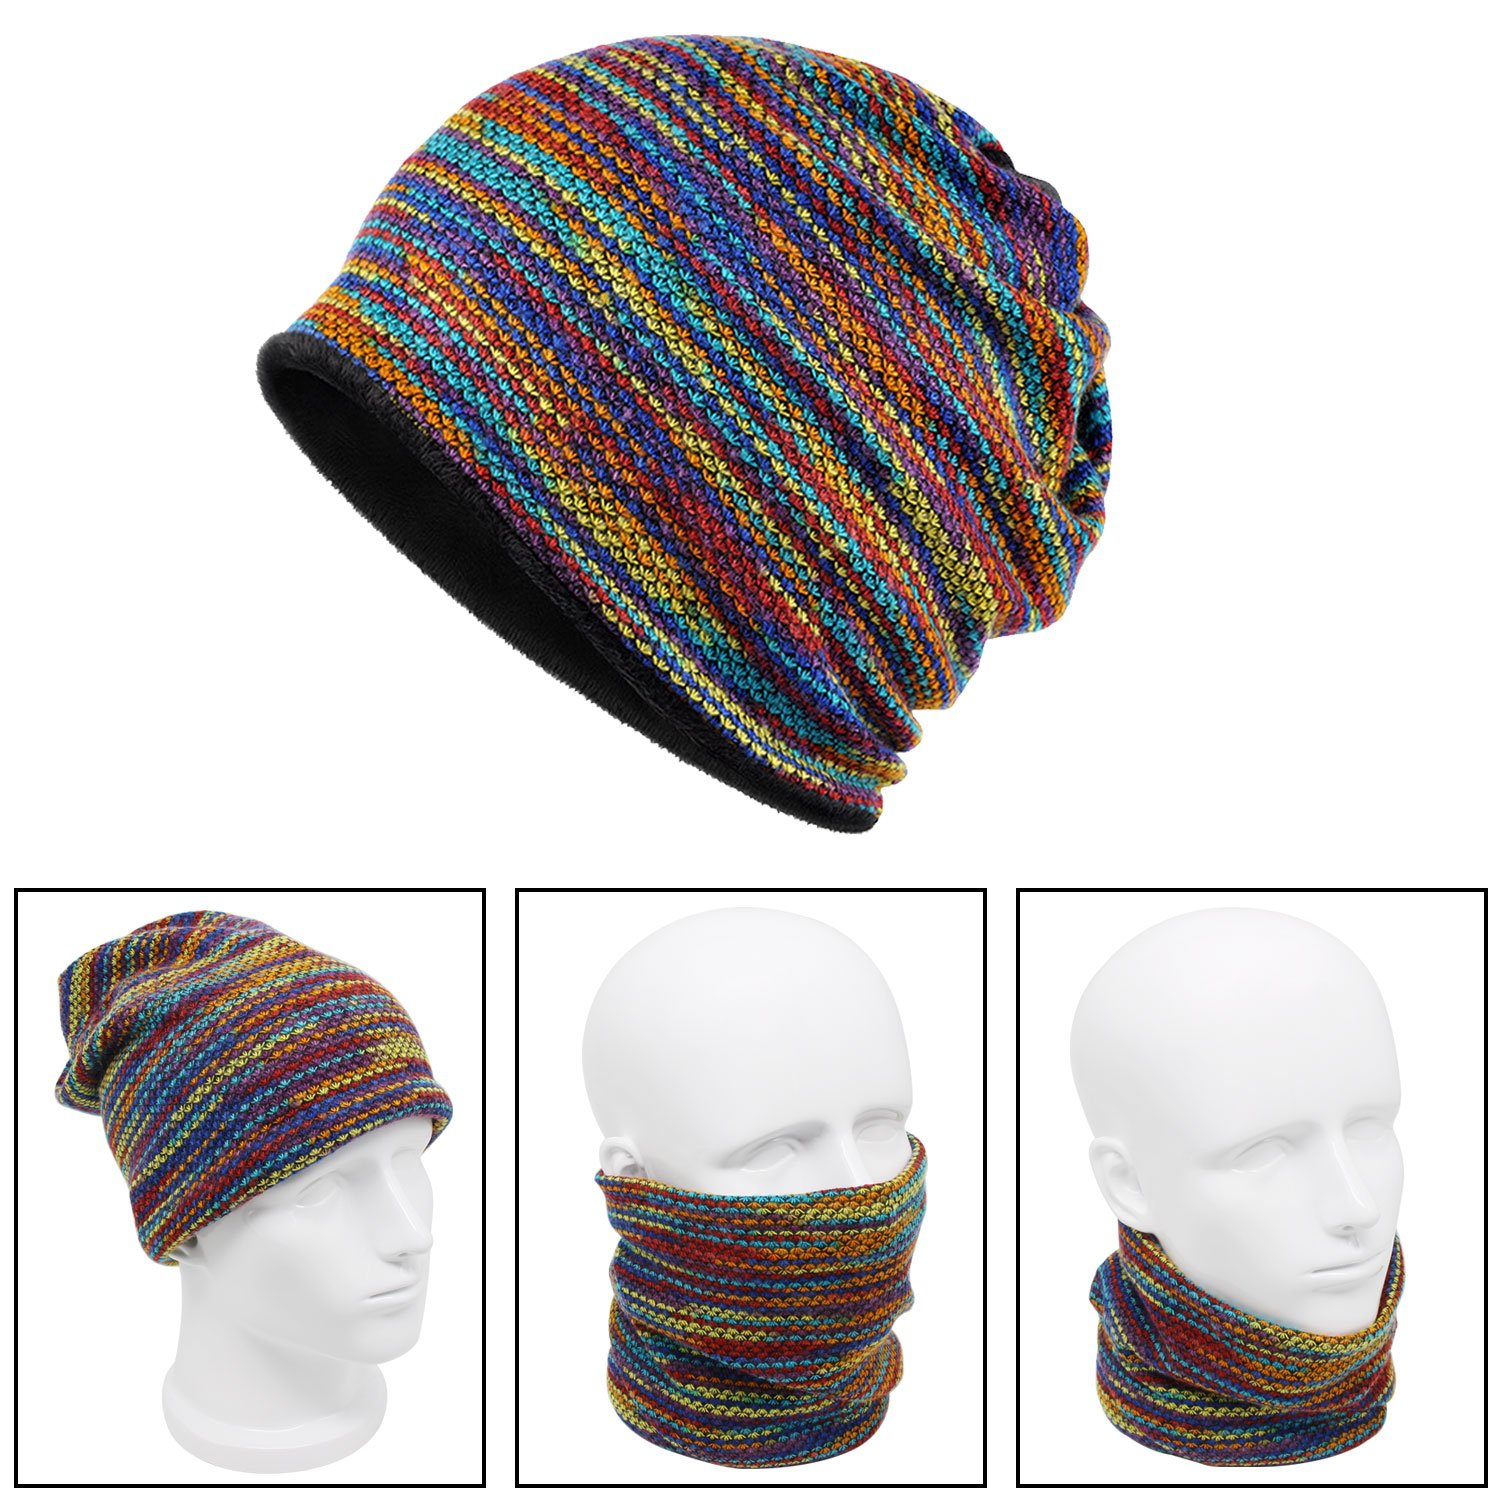 Xcellent Global Cappello scaldacollo unisex multiuso per collo, testa, viso, multicolore SP047